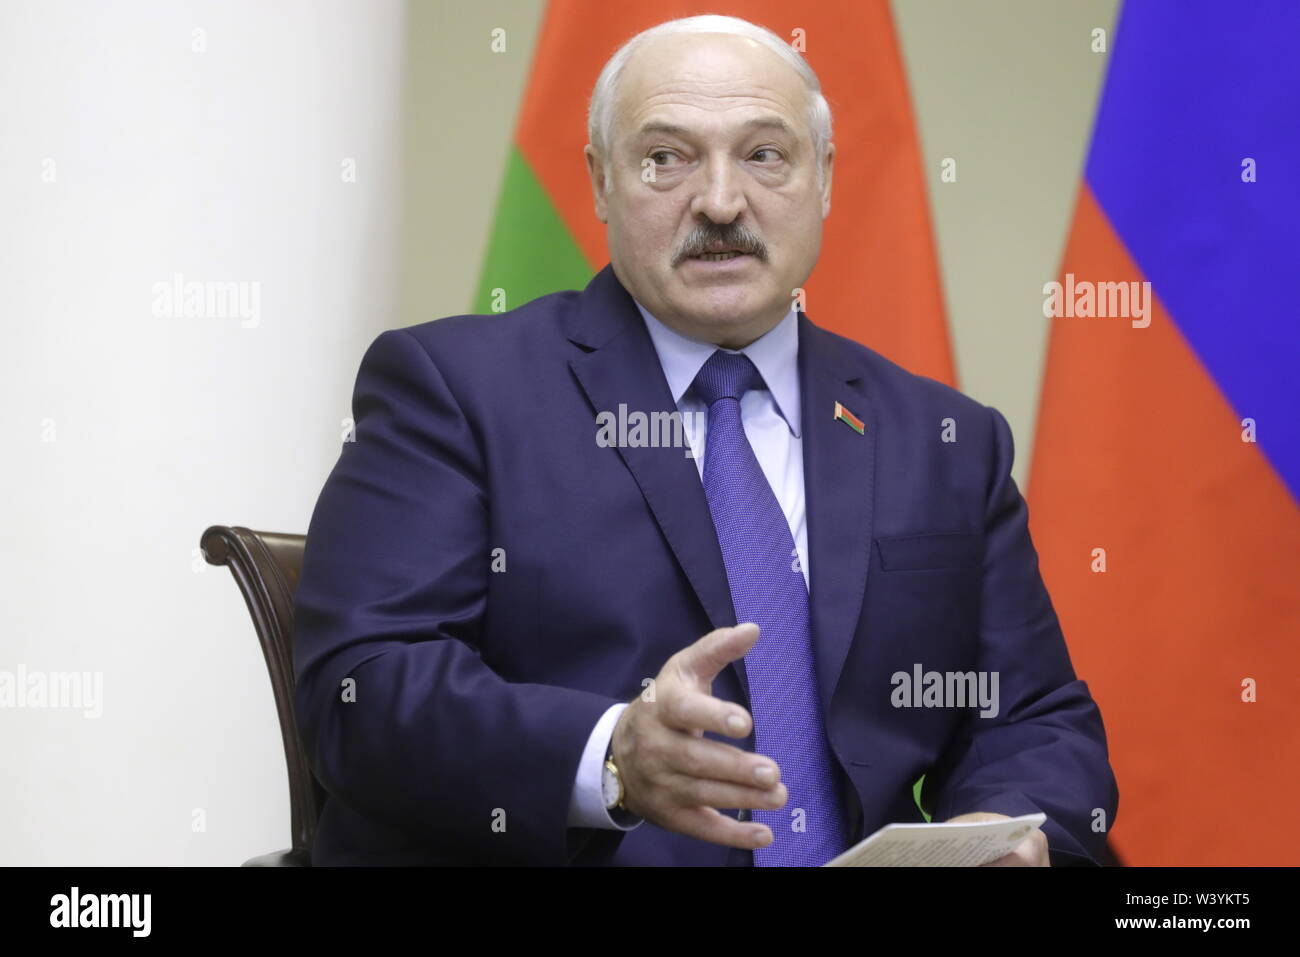 St Petersburg, Russia. 18th July, 2019. ST PETERSBURG, RUSSIA - JULY 18, 2019: Belarus' President Alexander Lukashenko during a meeting with Russia's President Vladimir Putin at the Tauride Palace. Mikhail Metzel/TASS Credit: ITAR-TASS News Agency/Alamy Live News - Stock Image